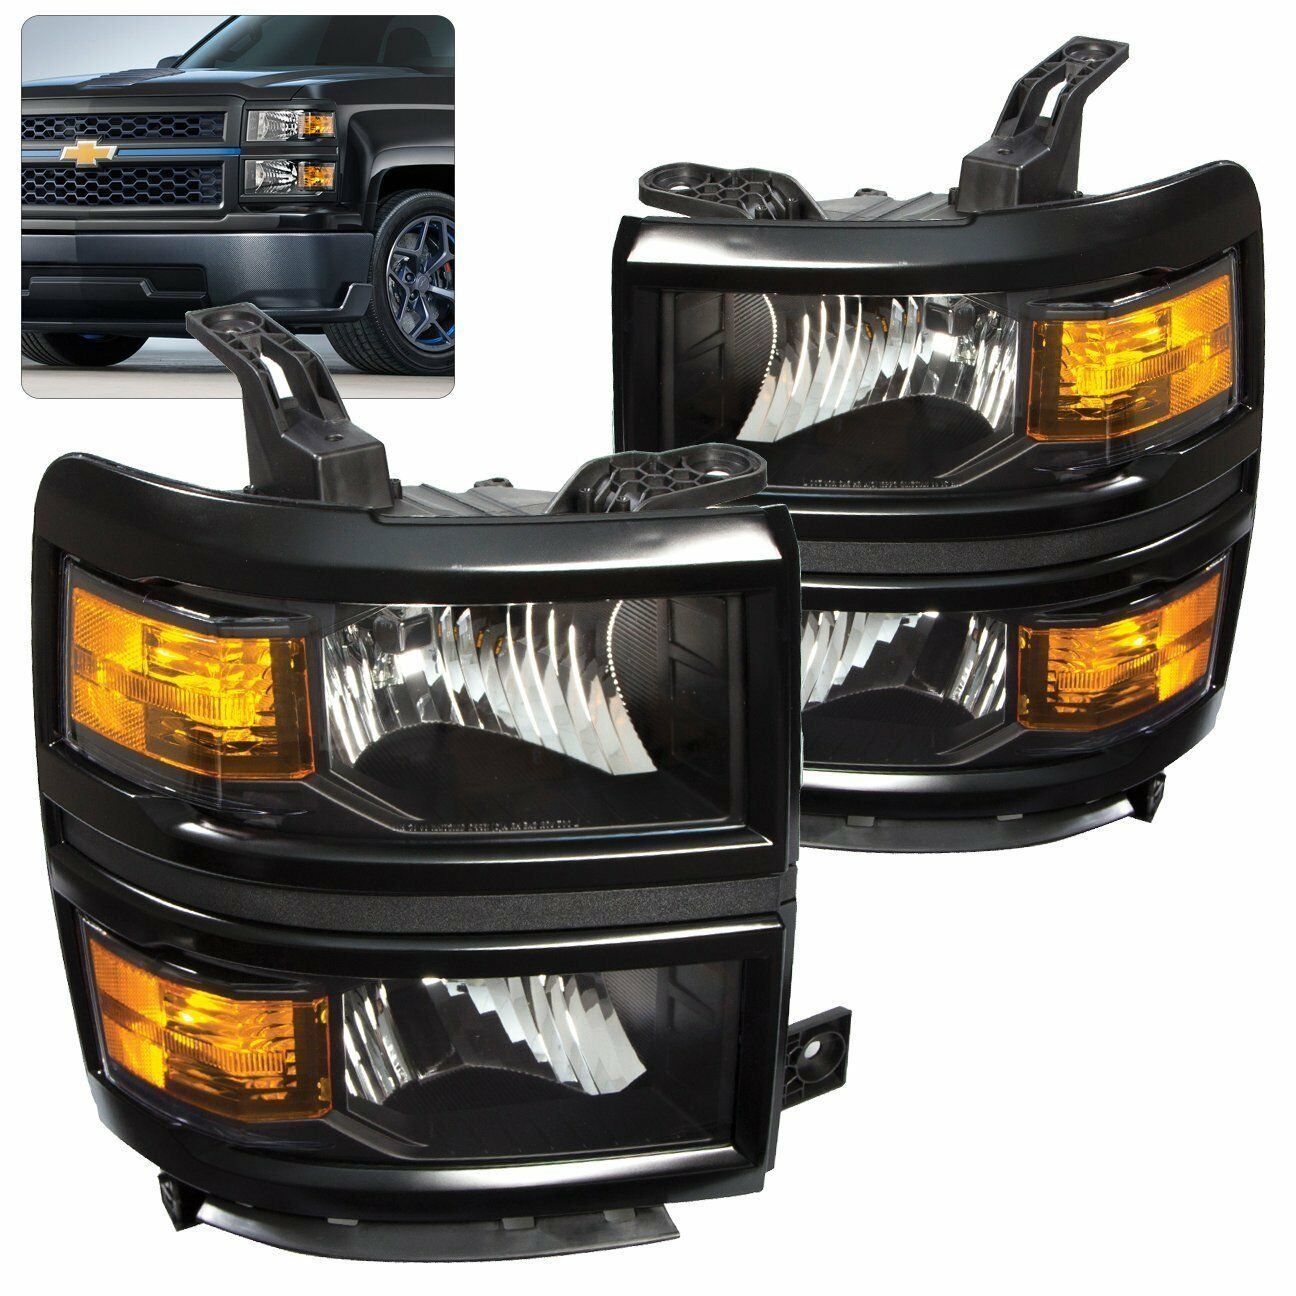 chevy silverado 1500 2500 3500 headlight head lights. Black Bedroom Furniture Sets. Home Design Ideas